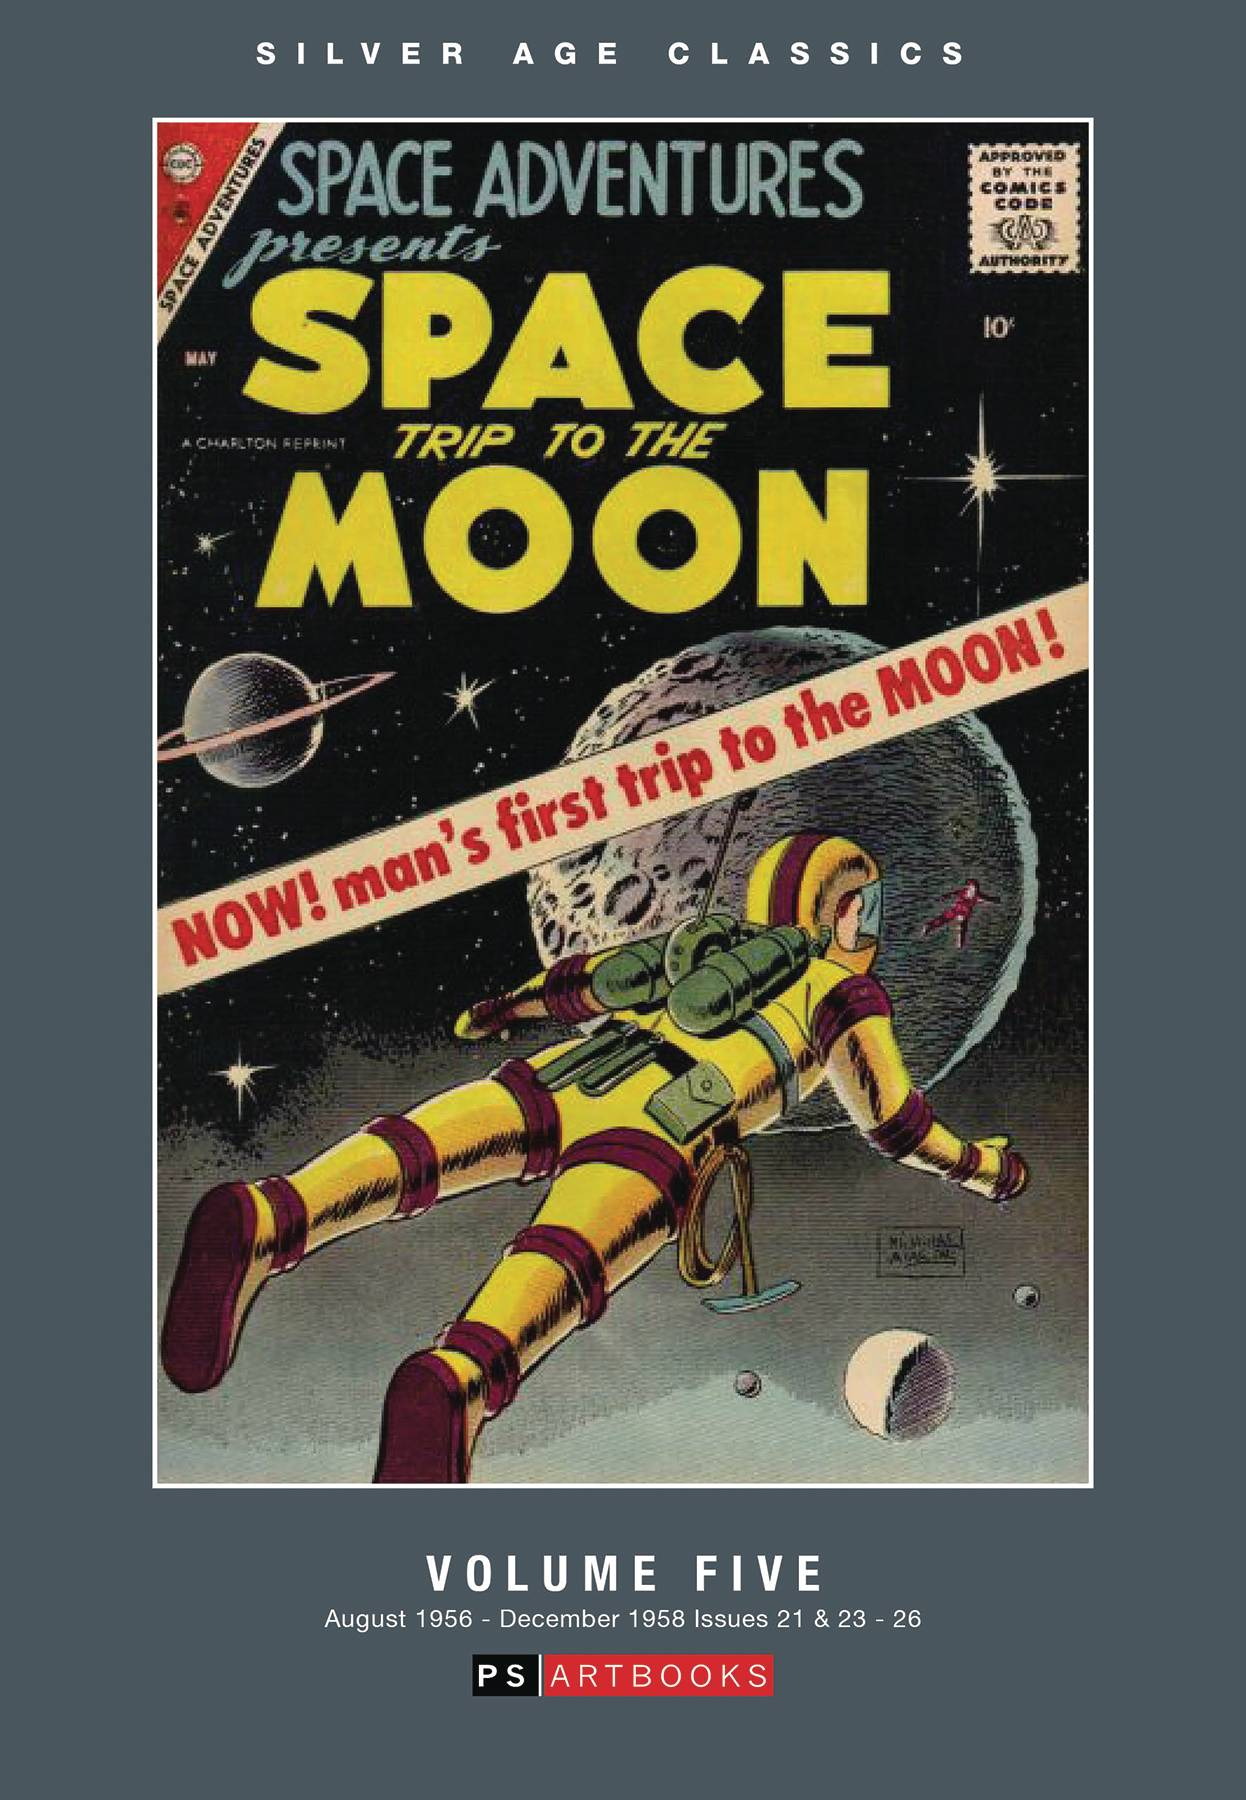 SILVER AGE CLASSICS SPACE ADVENTURES HC 05